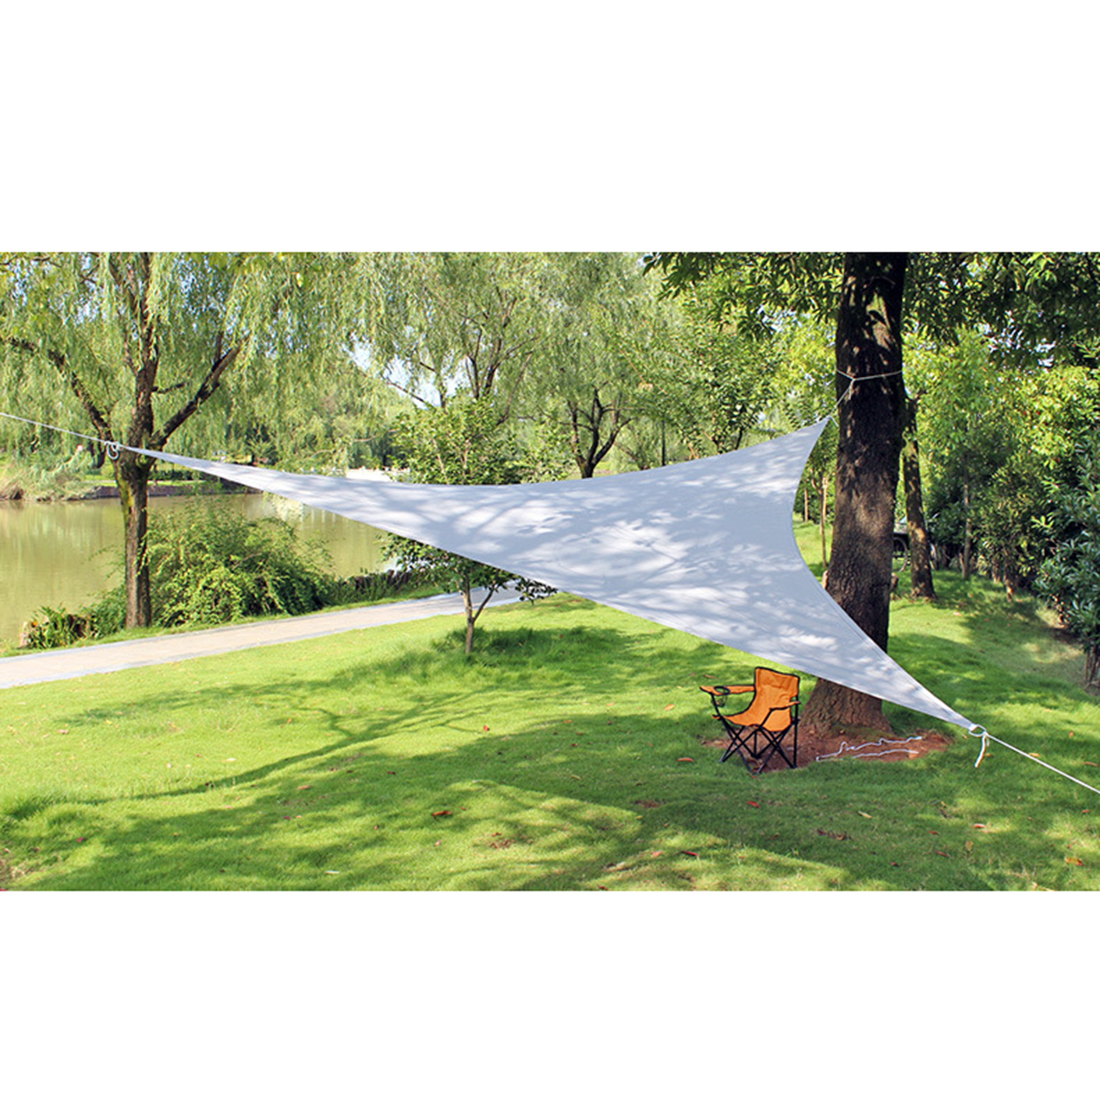 4M White Outdoor Waterproof Sunshade Sail Canopy Patio Awning Garden UV Camping Shelter Decor 2019 Summer New Arrival